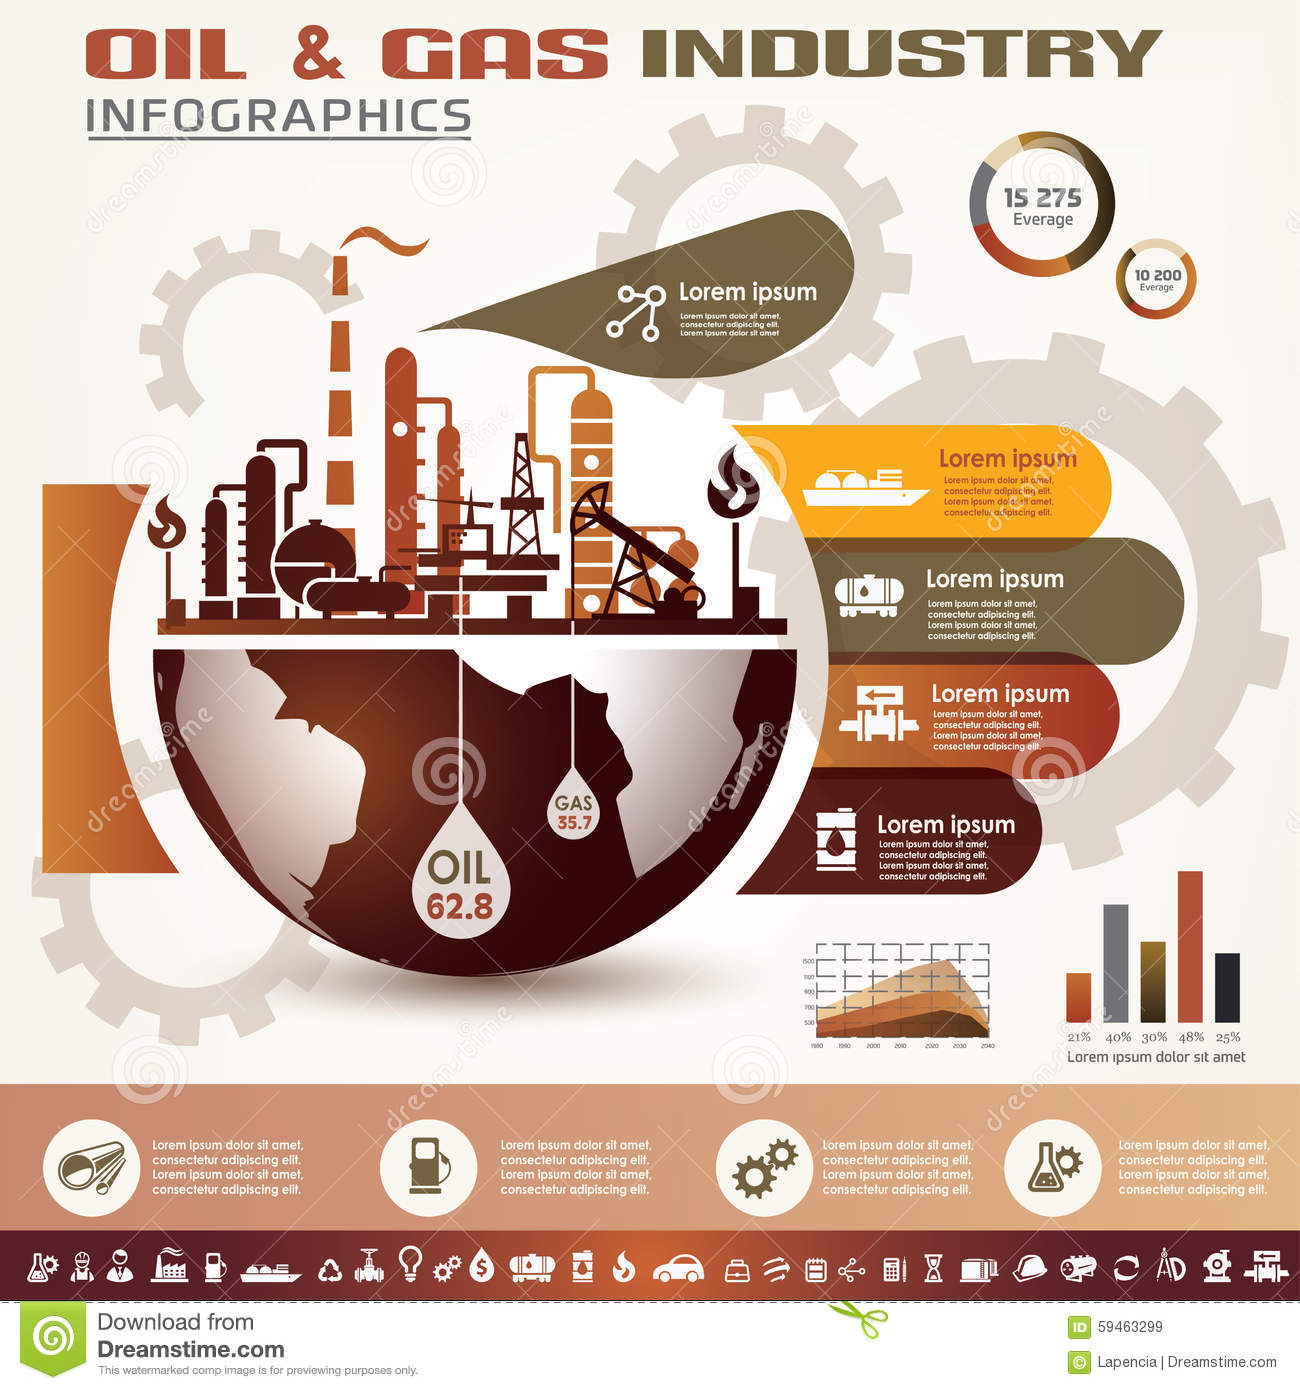 Pump It Up Prices >> Oil And Gas Industry Infographics Stock Vector - Image ...